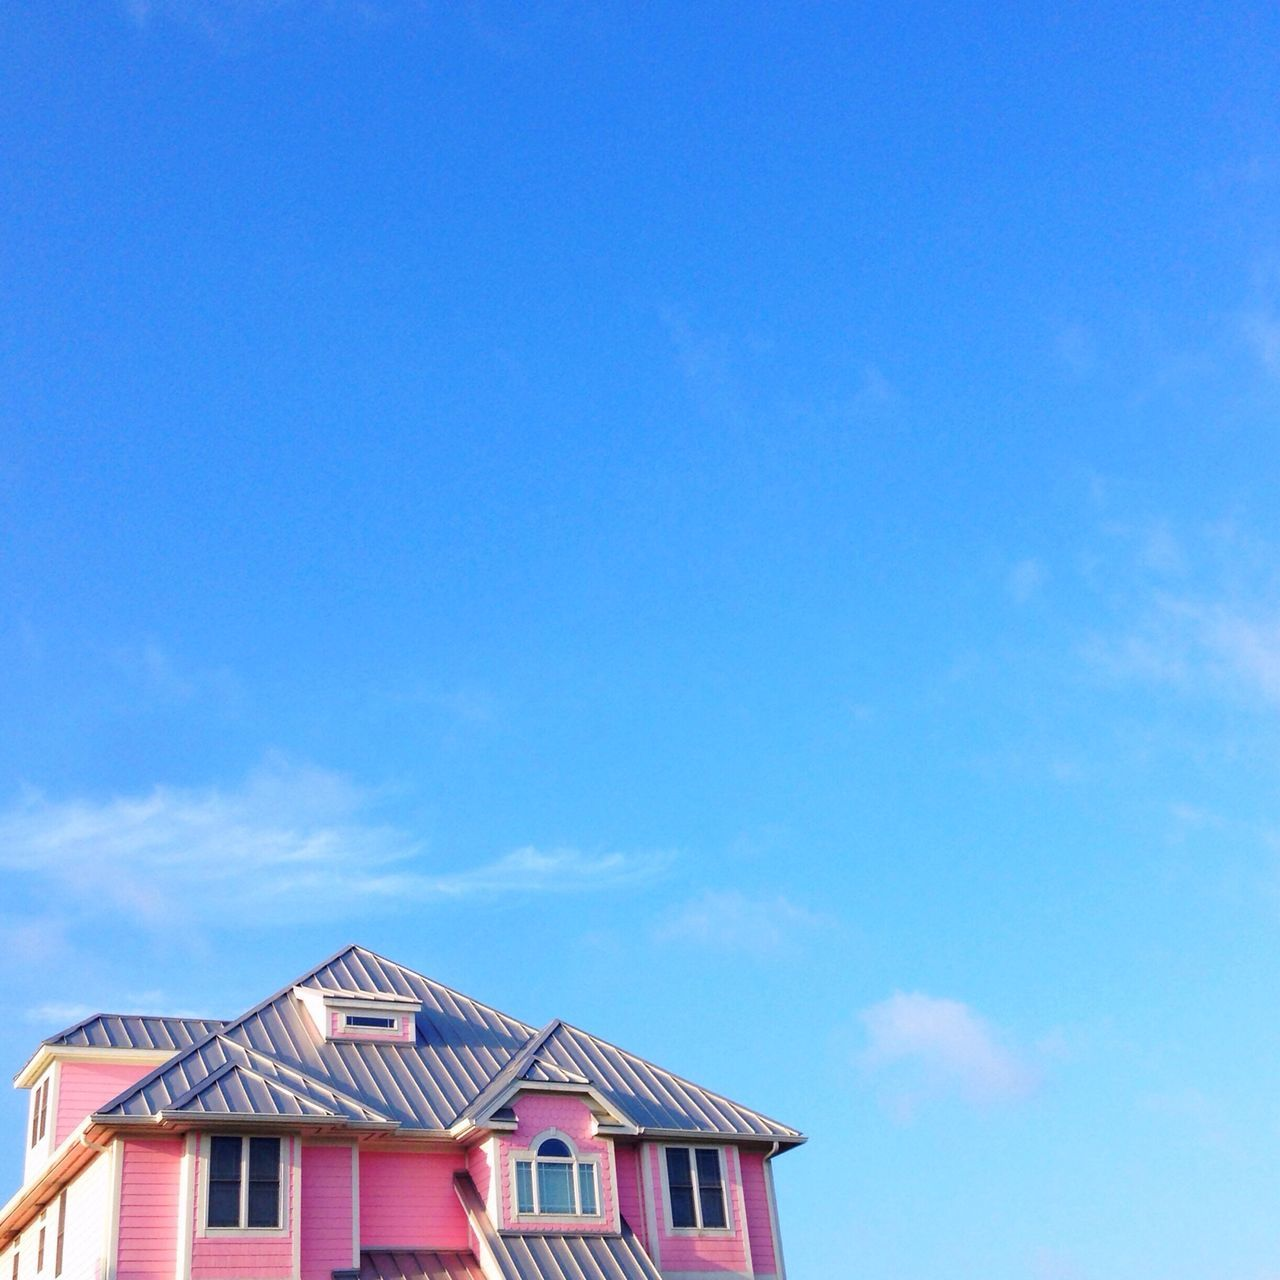 Pink house against blue sky